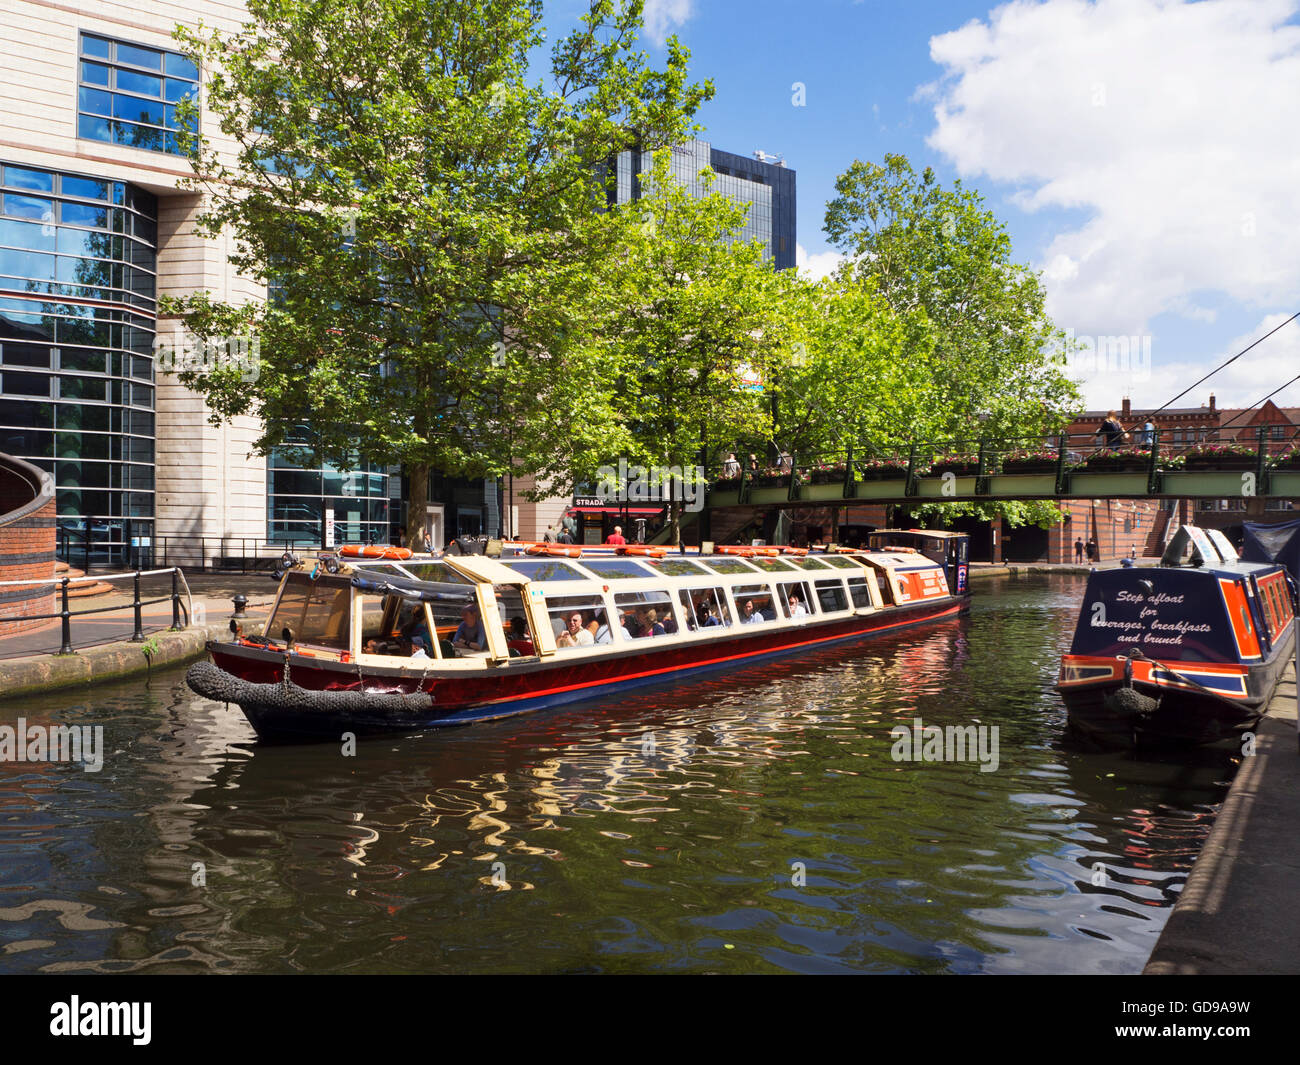 Pleasure Cruise on the Brimingham Canal at Brindley Place Birmingham West Midlands England - Stock Image